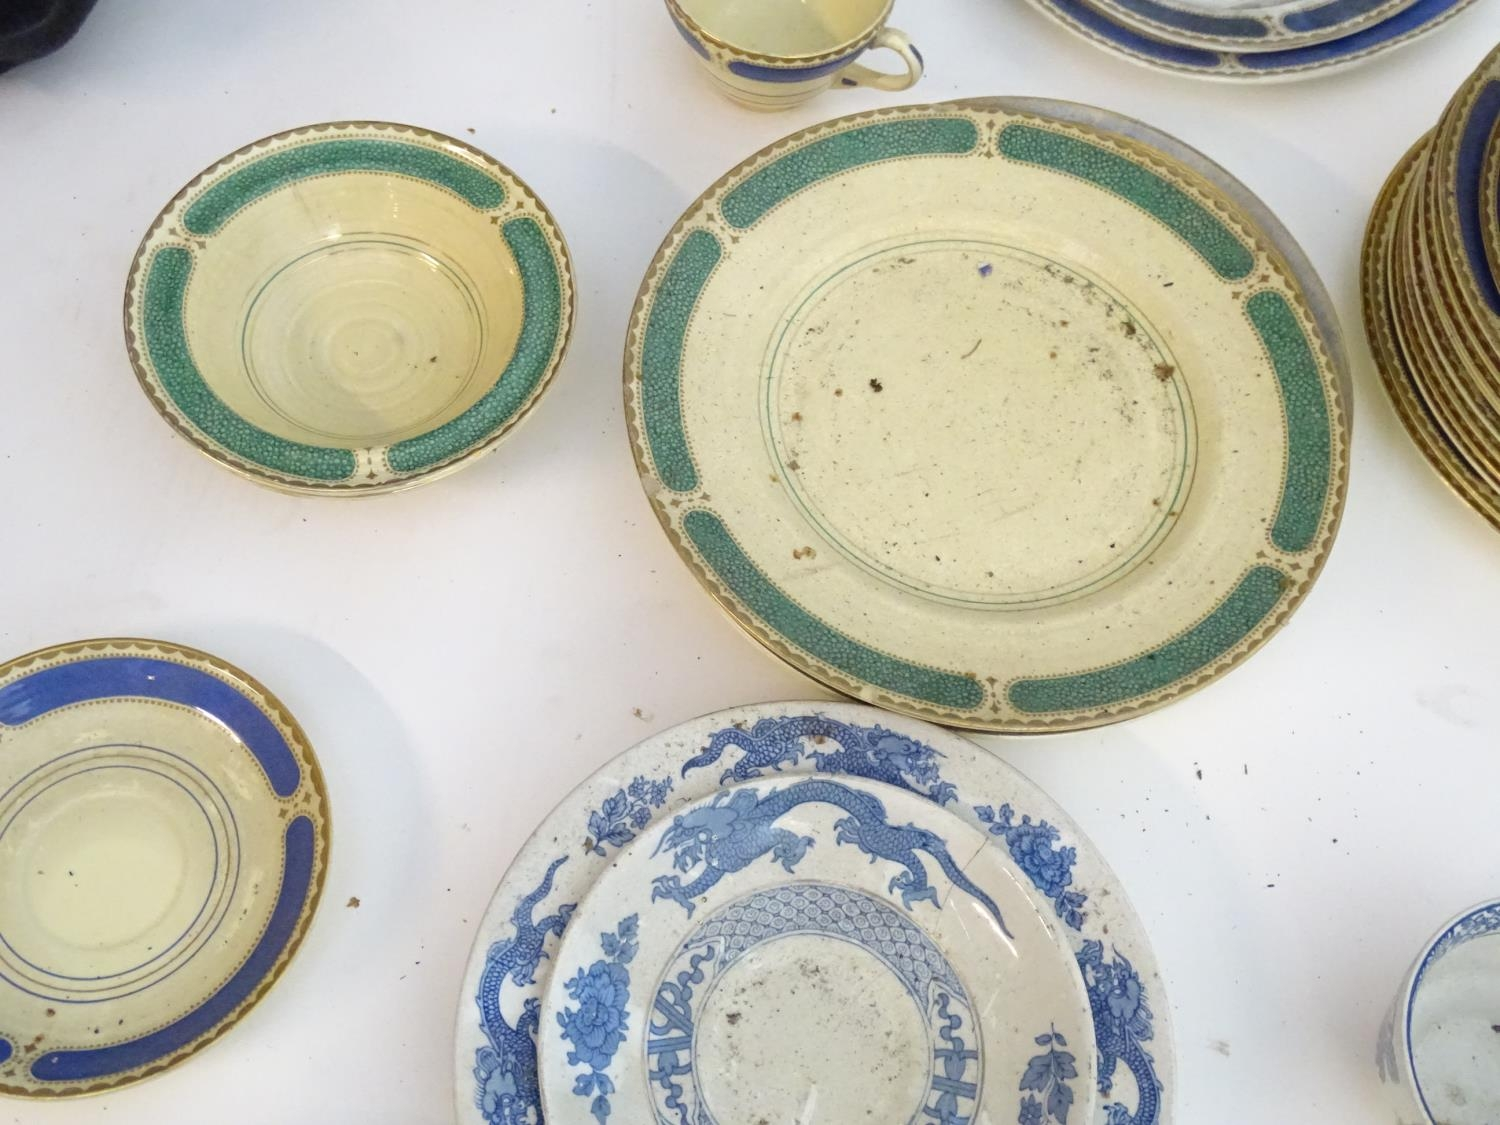 A large quantity of assorted Booths china to include teapots, plates, tureens, jugs, serving dishes, - Image 16 of 17